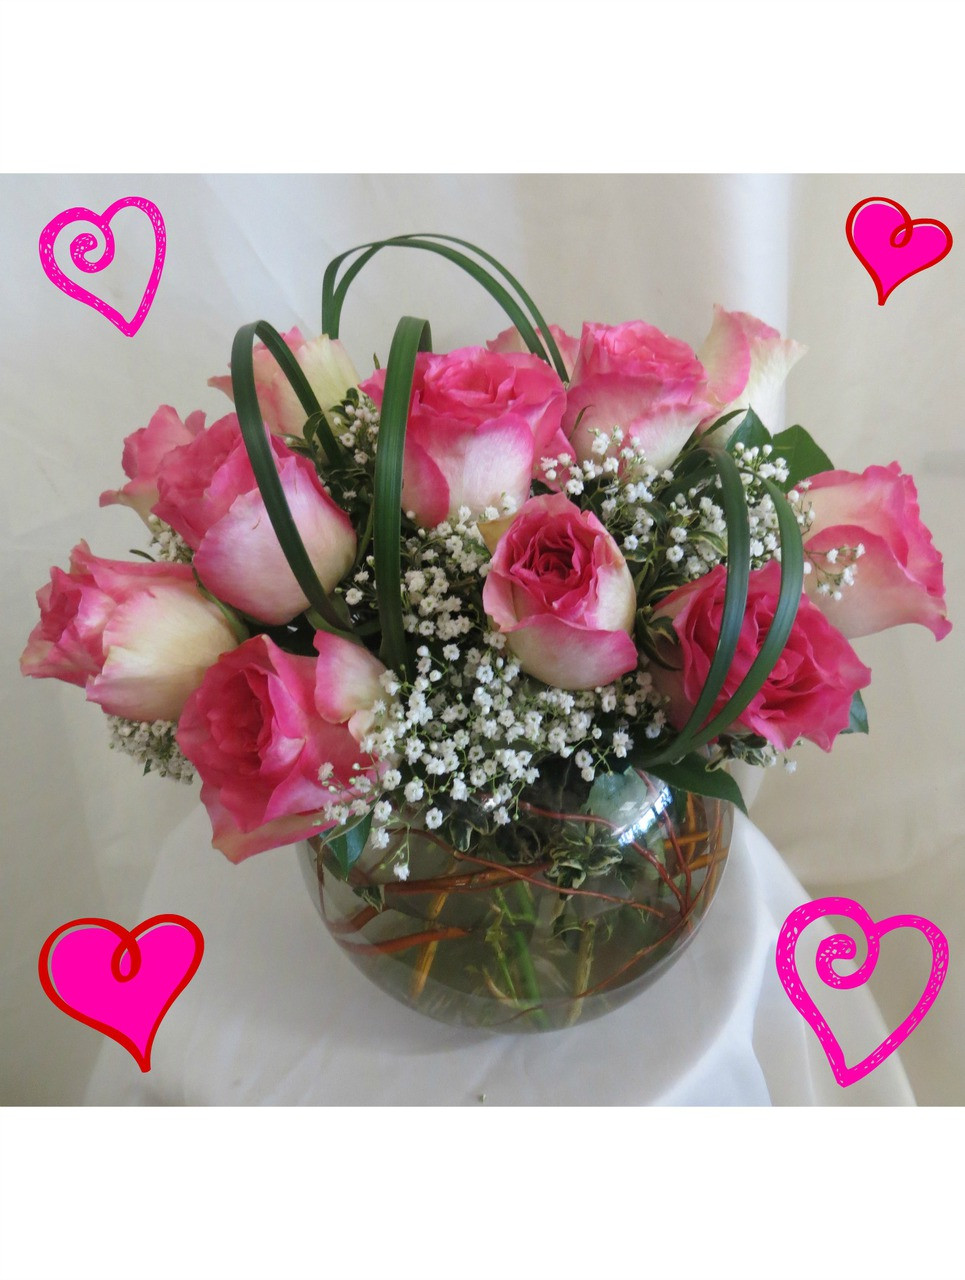 1 Dozen Beautiful Pink White Roses In A Bowl Valentines